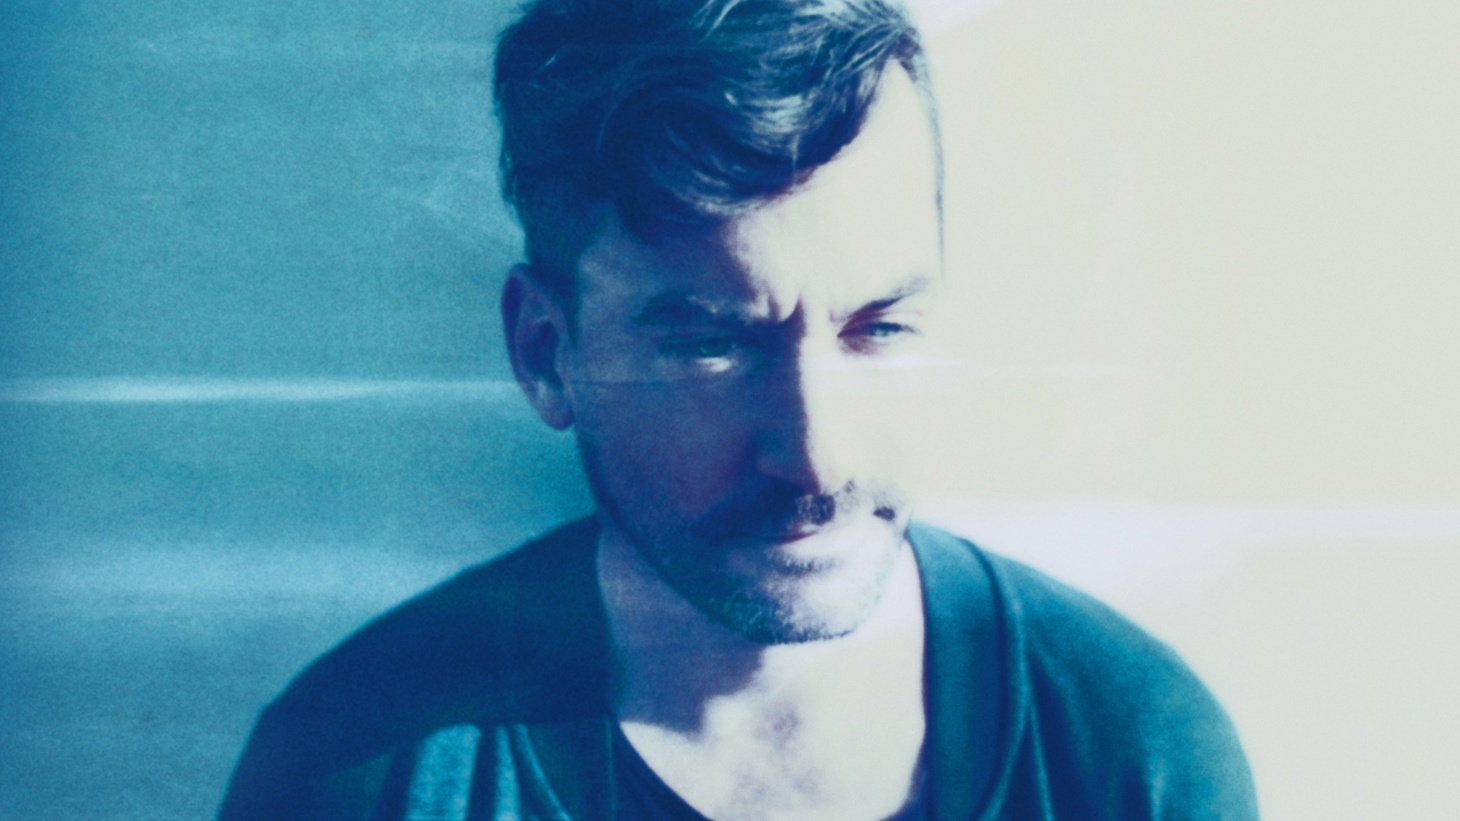 Migration is an apropos title for the new album by Simon Green, aka Bonobo.